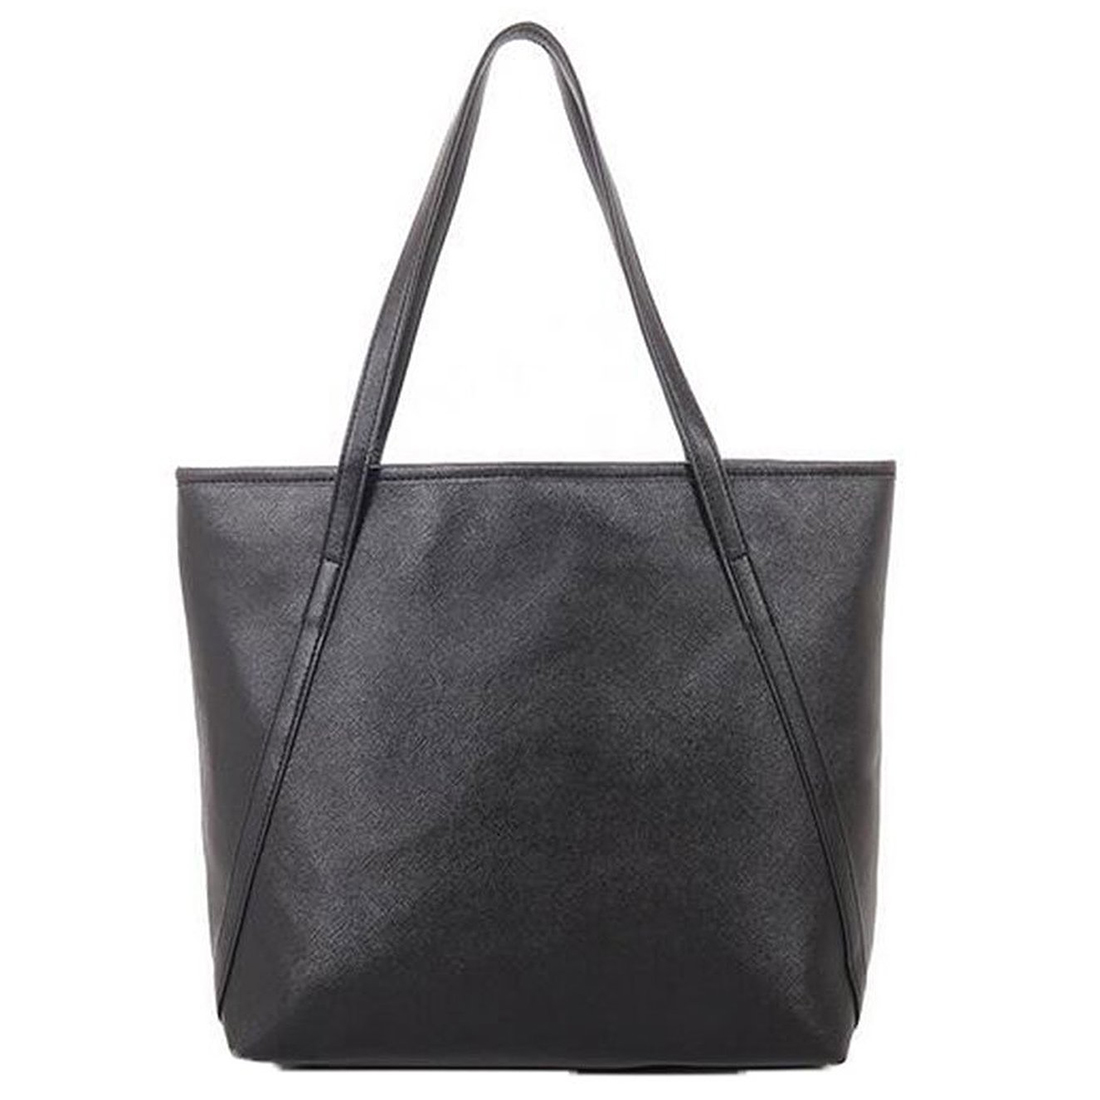 Women-Fashion-PU-Leather-Handbags-Shoulder-Bags-black-Z3M7